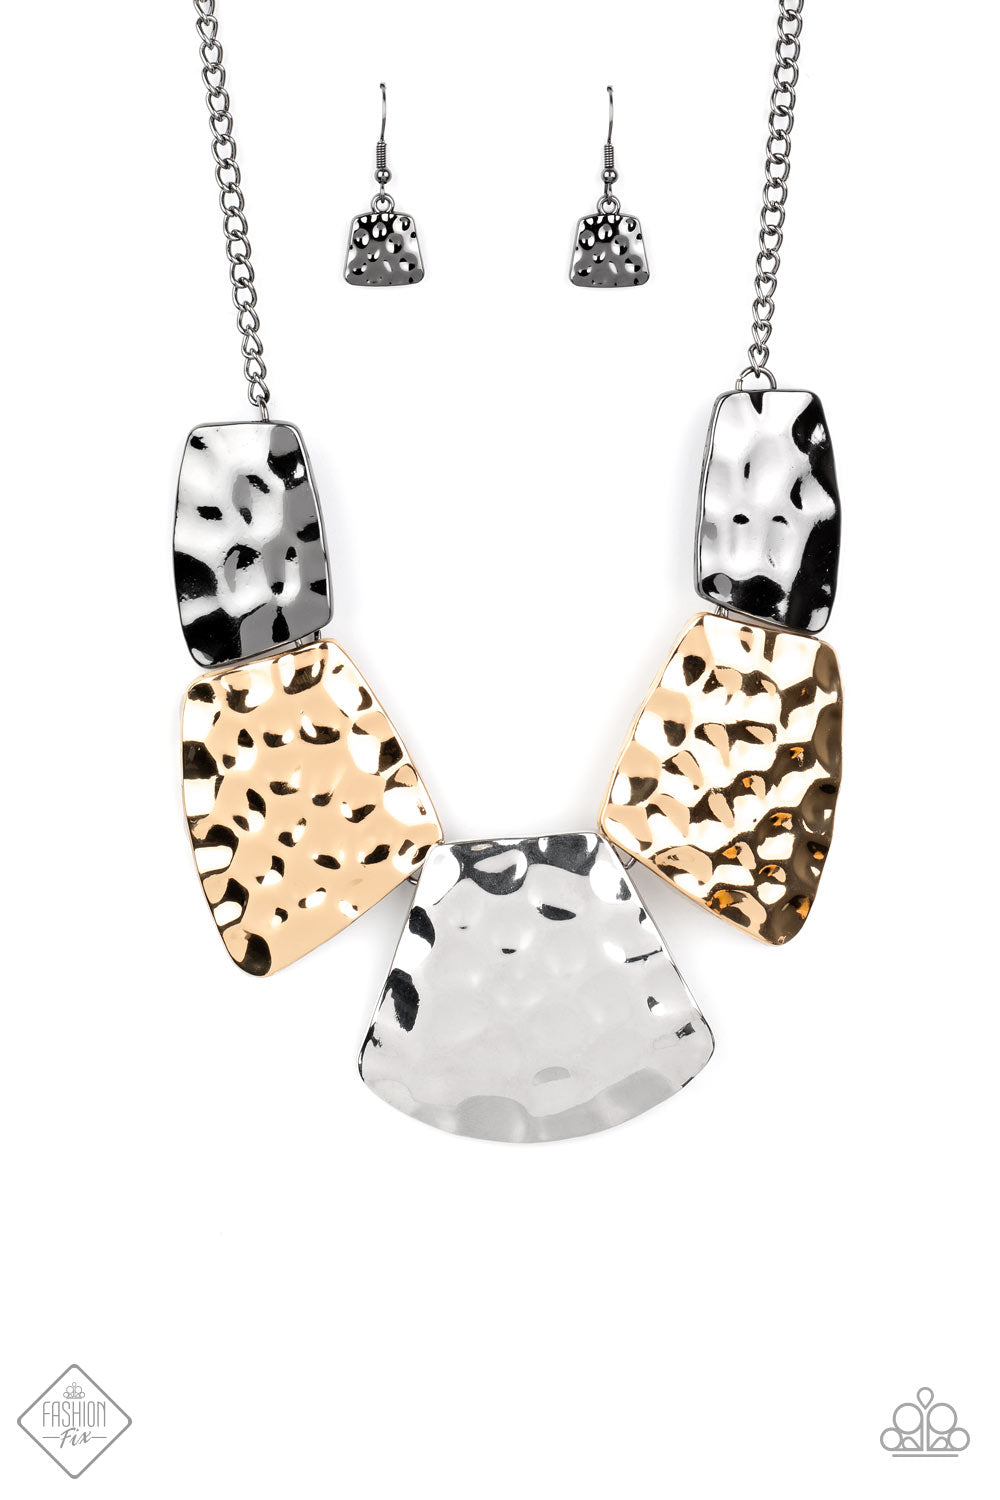 five-dollar-jewelry-haute-plates-paparazzi-accessories